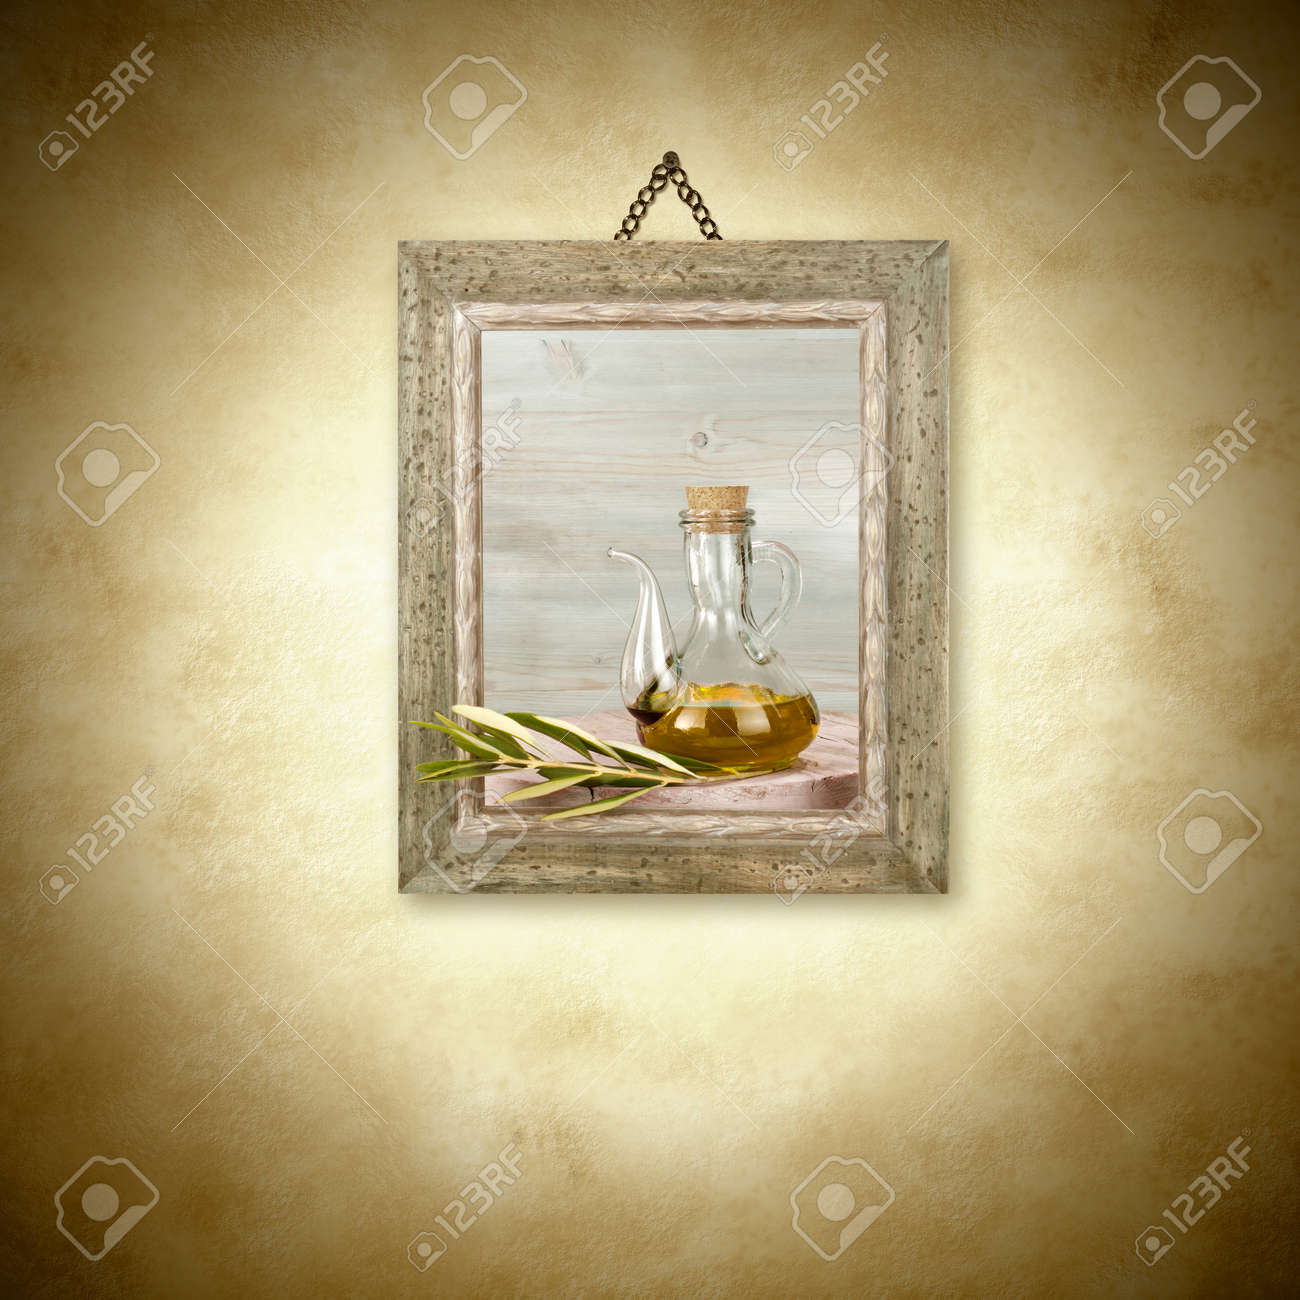 Olive Oil In Glass Jar, Picture Hanging On The Wall Decoration ...